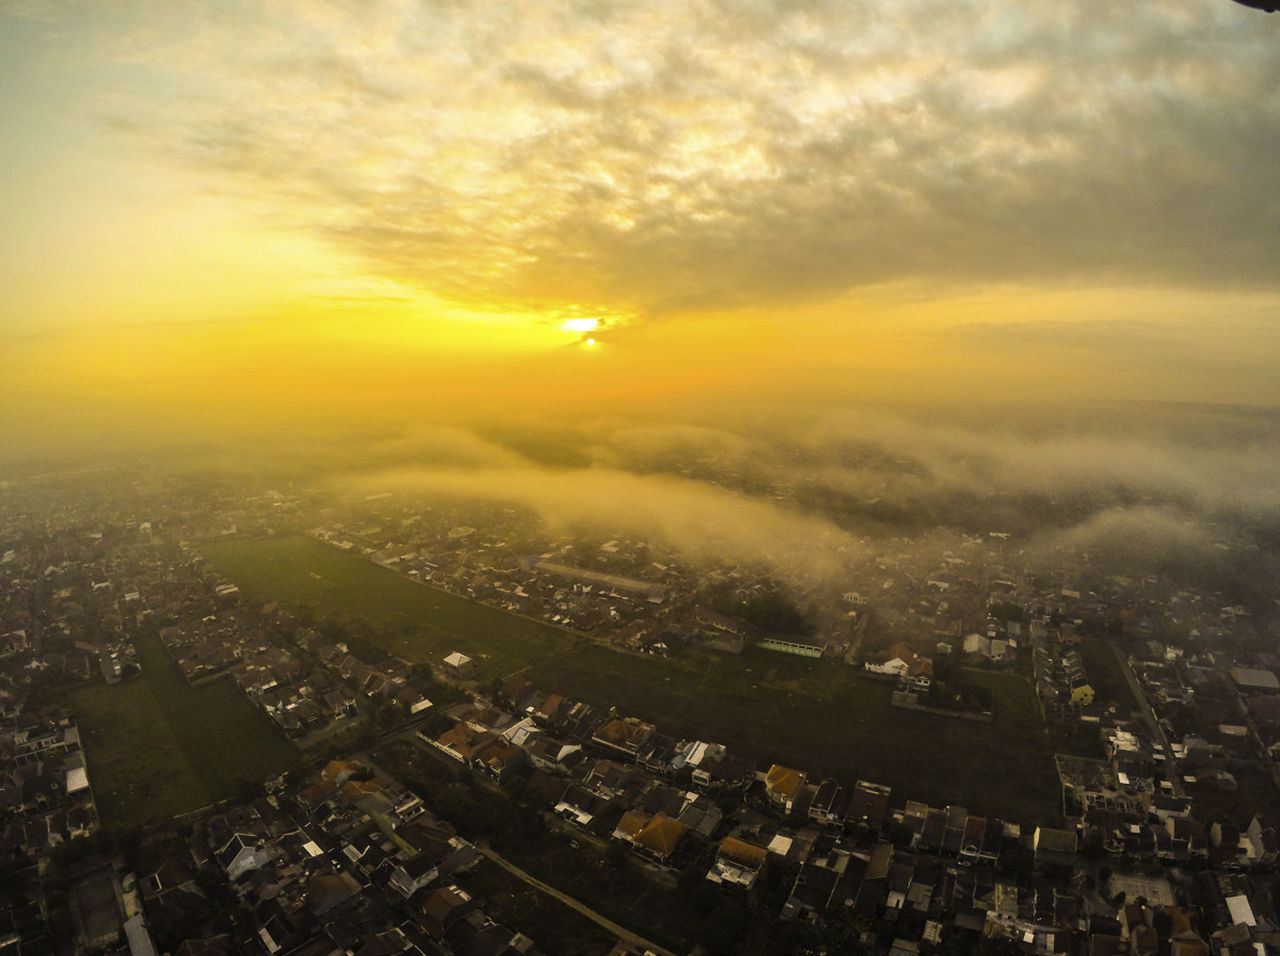 Beautiful sunset from Kebonsari - Malang Aerial View Architecture Building Exterior Built Structure City Cityscape Cloud - Sky Crowded Illuminated Night Outdoors Residential Building Sky Skyscraper